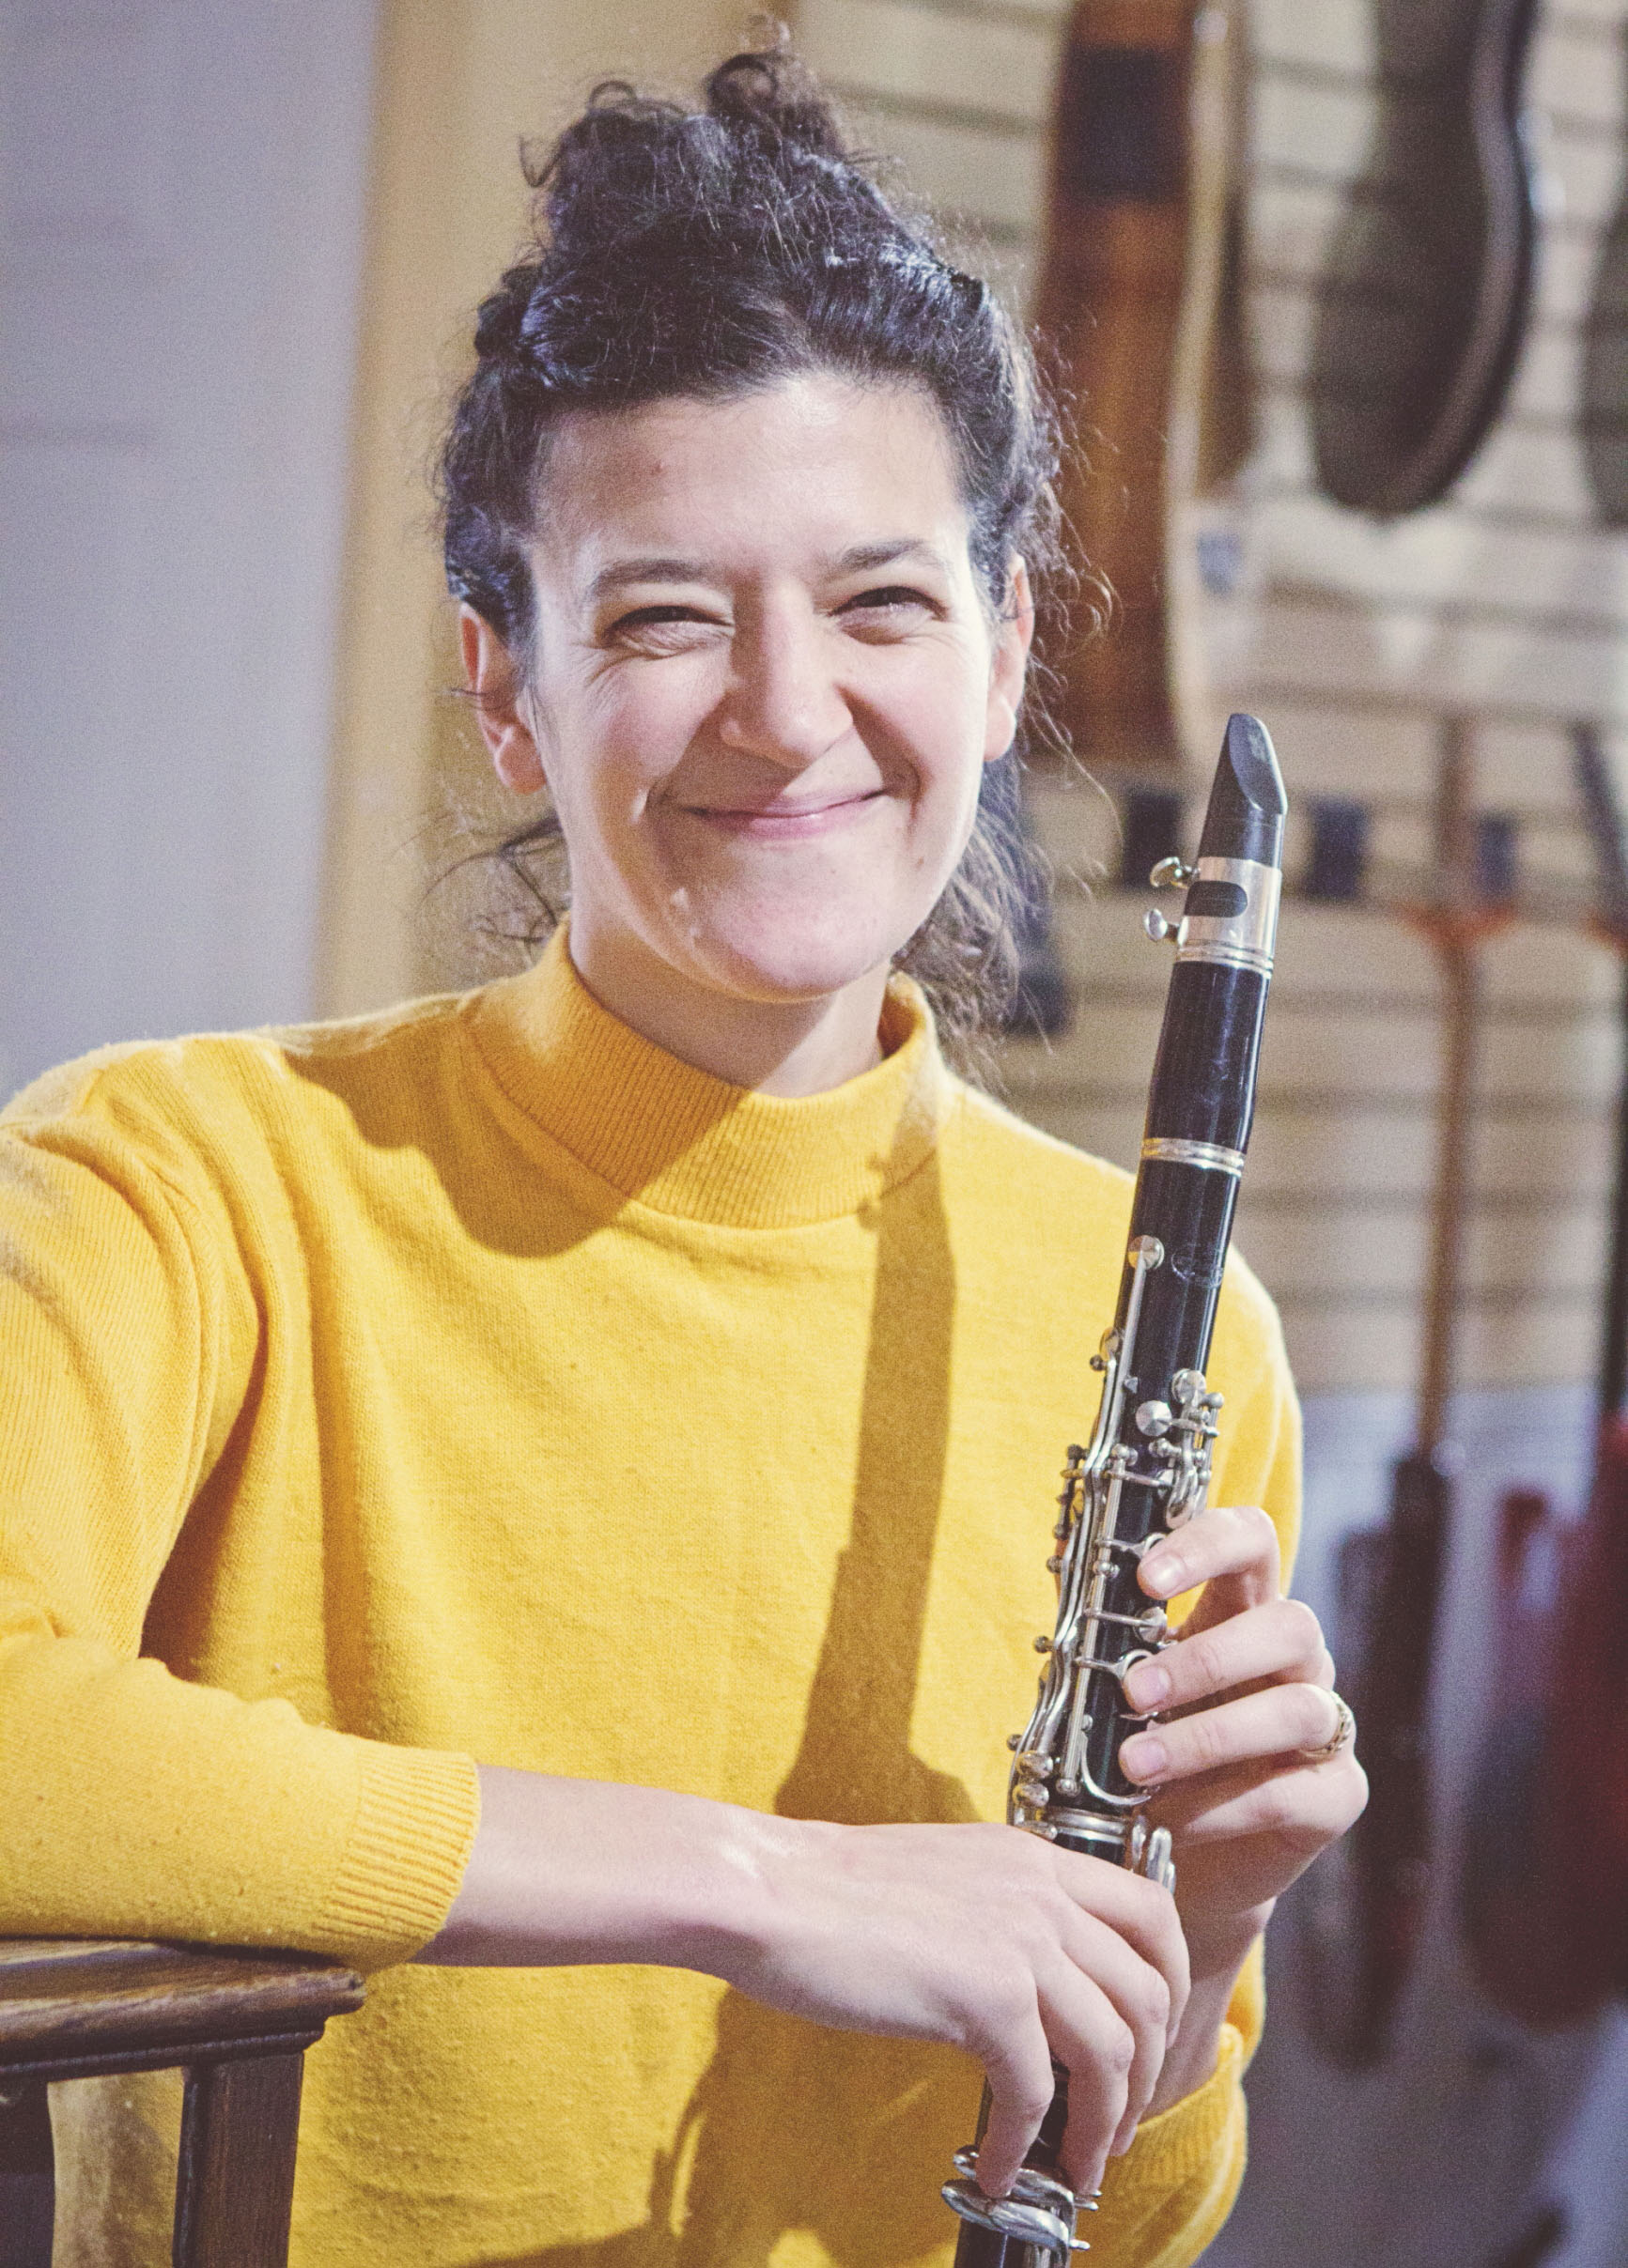 Nicola Miller Saxophone, Flute, Clarinet  Nicola has years of experience teaching individuals and classes in Toronto, Montreal, and Lochgilphead, Scotland to a wide range of students of all ages, including autistic children. She studied Indian flute in Mayur Vihar, India, and has performed jazz and experimental music in Toronto. She has degrees in jazz and music education from Humber College and McGill University.